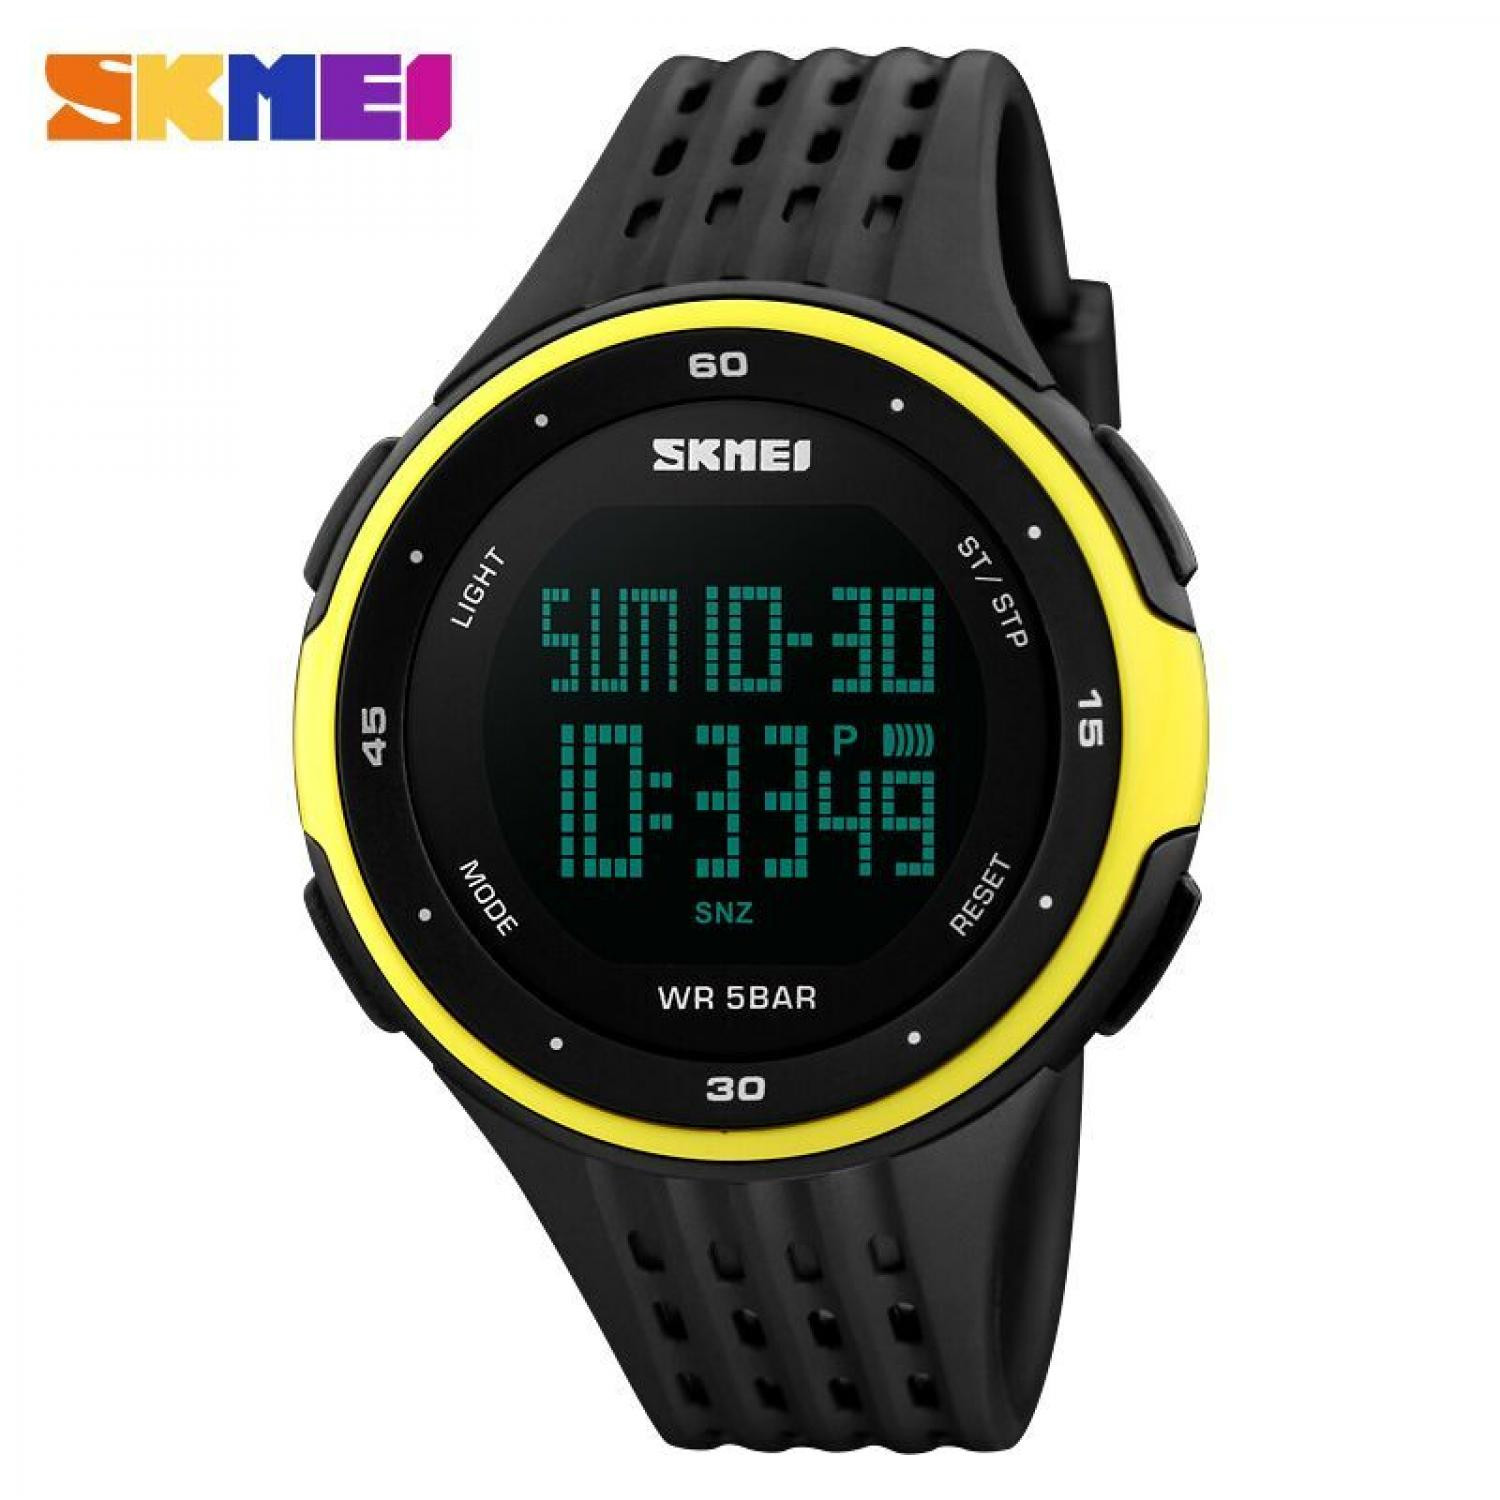 Jam Tangan Pria Digital SKMEI Sport LED Watch Original DG1219 Kuning